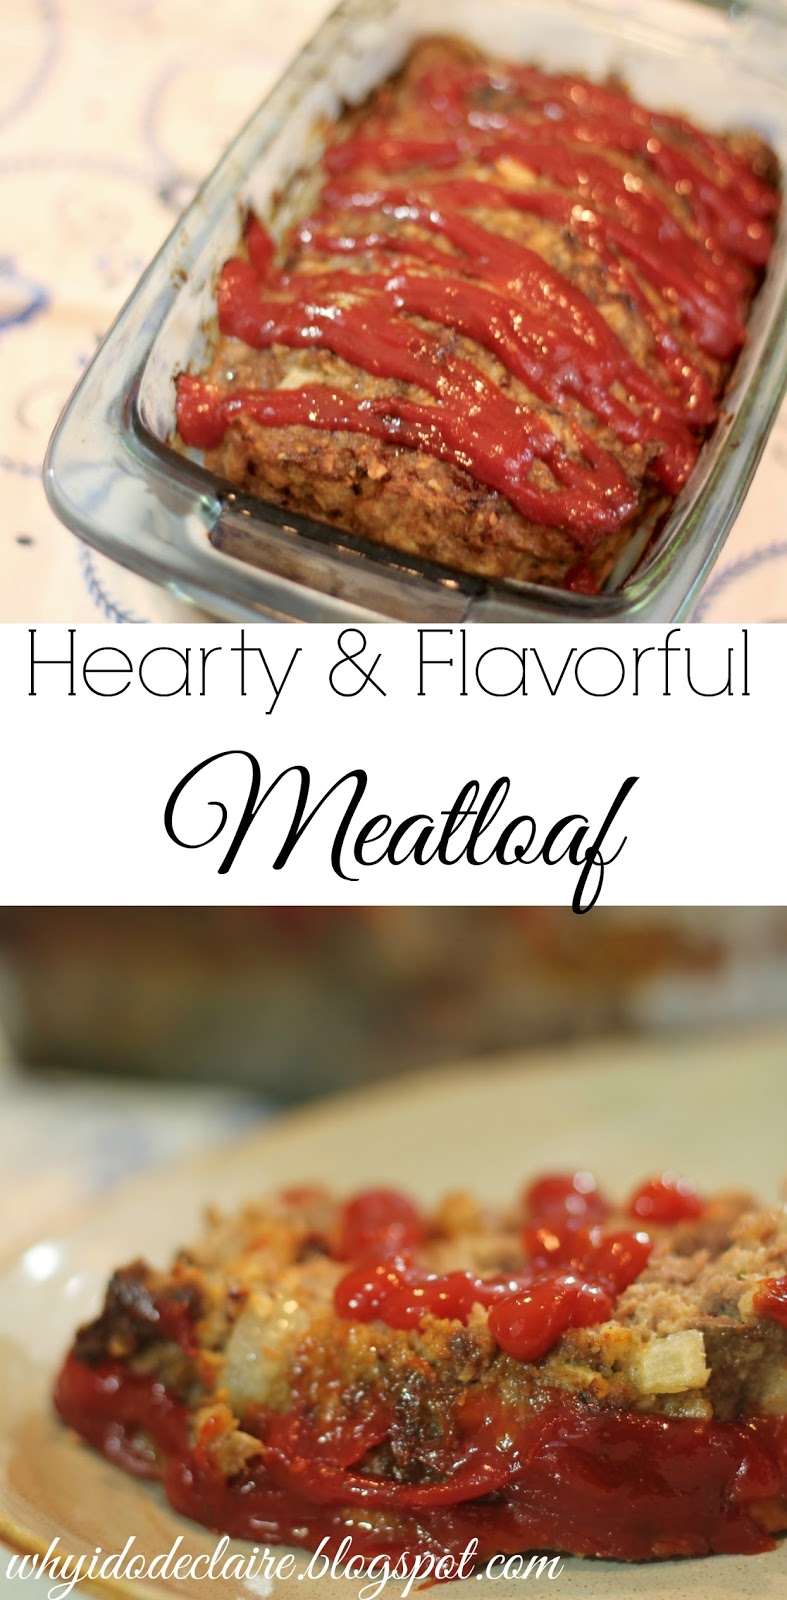 flavorful meatloaf recipe, easy meatloaf recipe, turkey meatloaf recipe